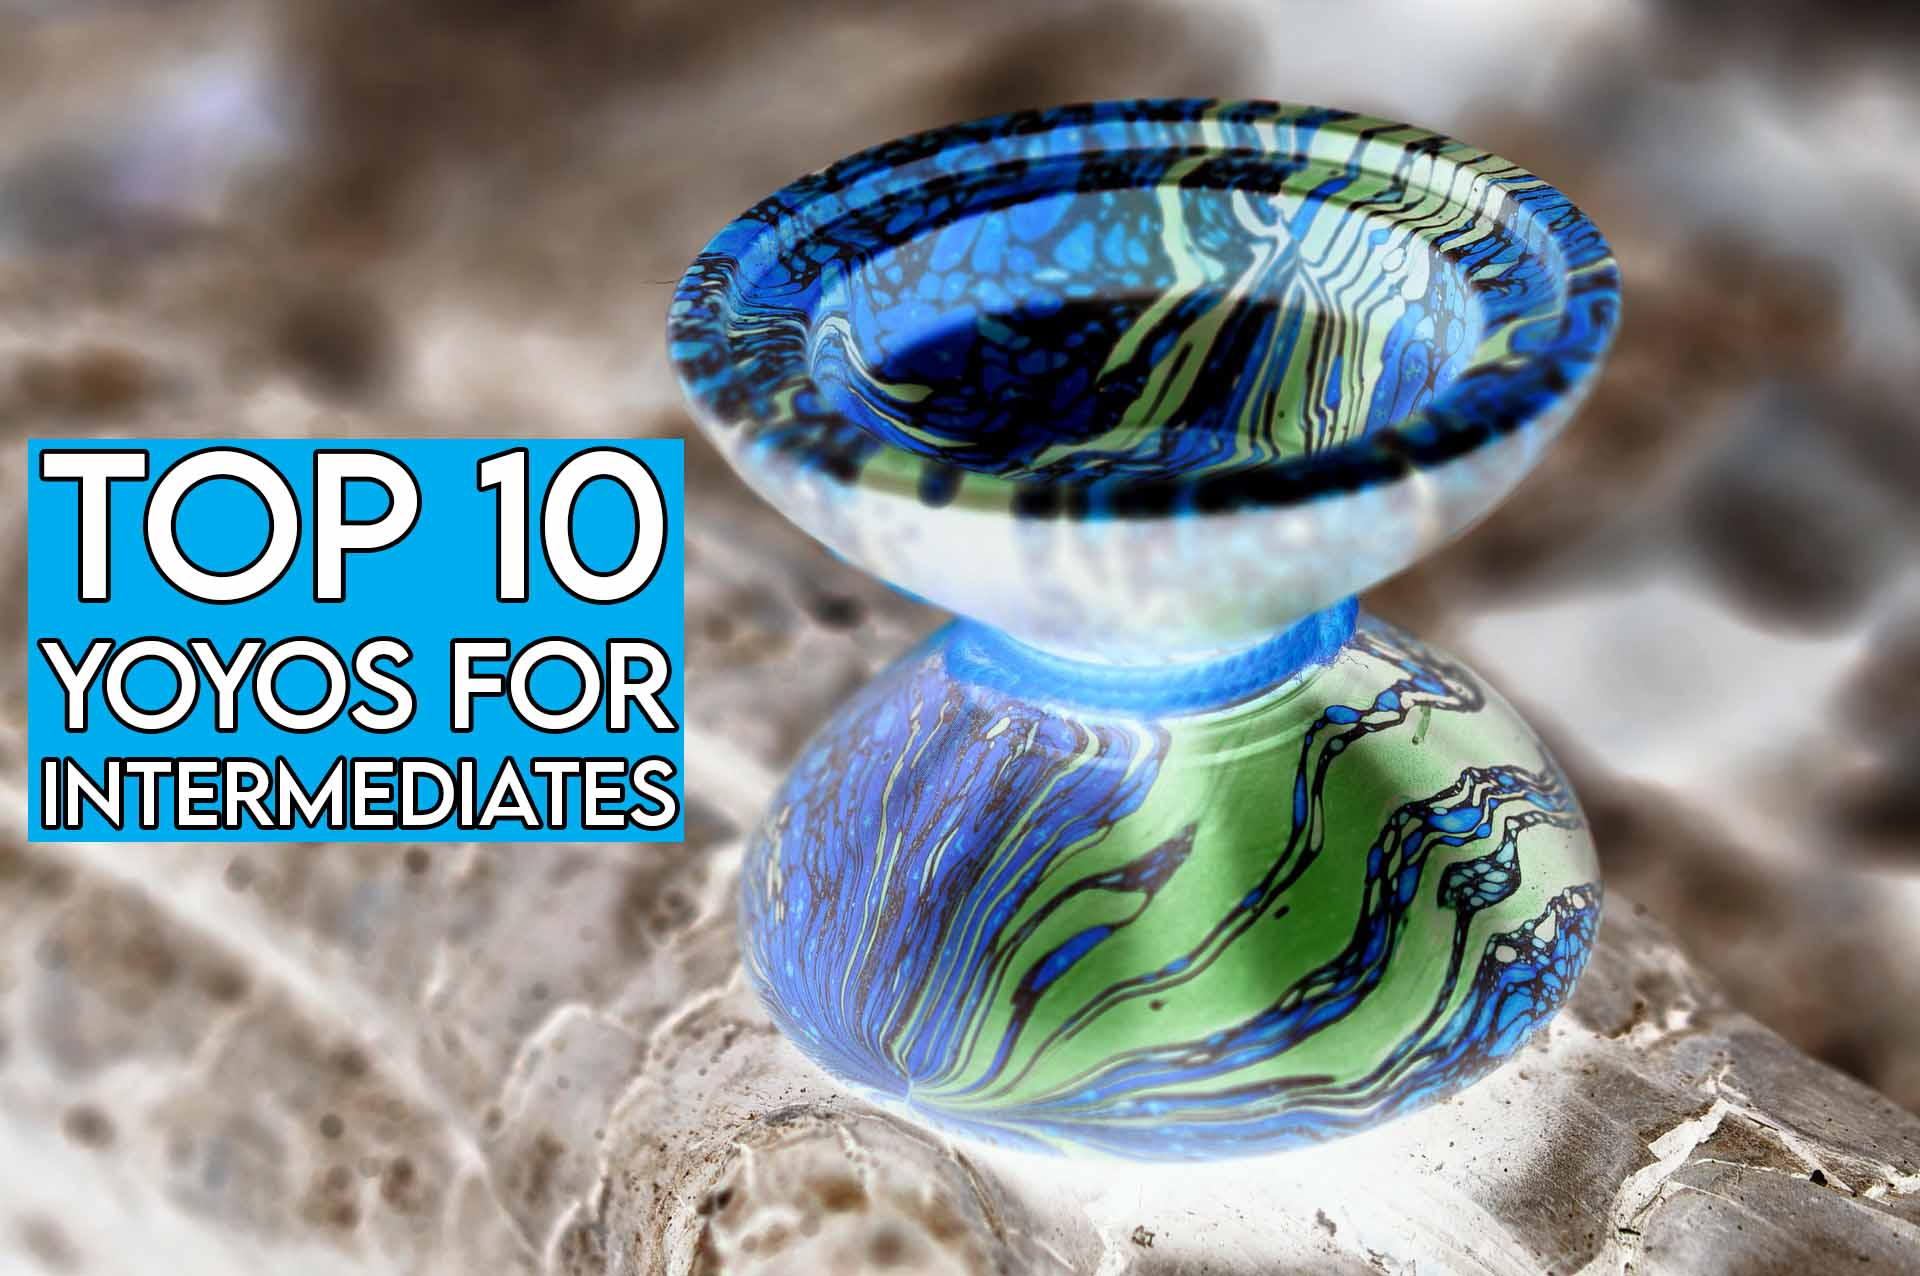 This image features the relevant article title about the best intermediate yoyos and shows an evocative image of a yoyo